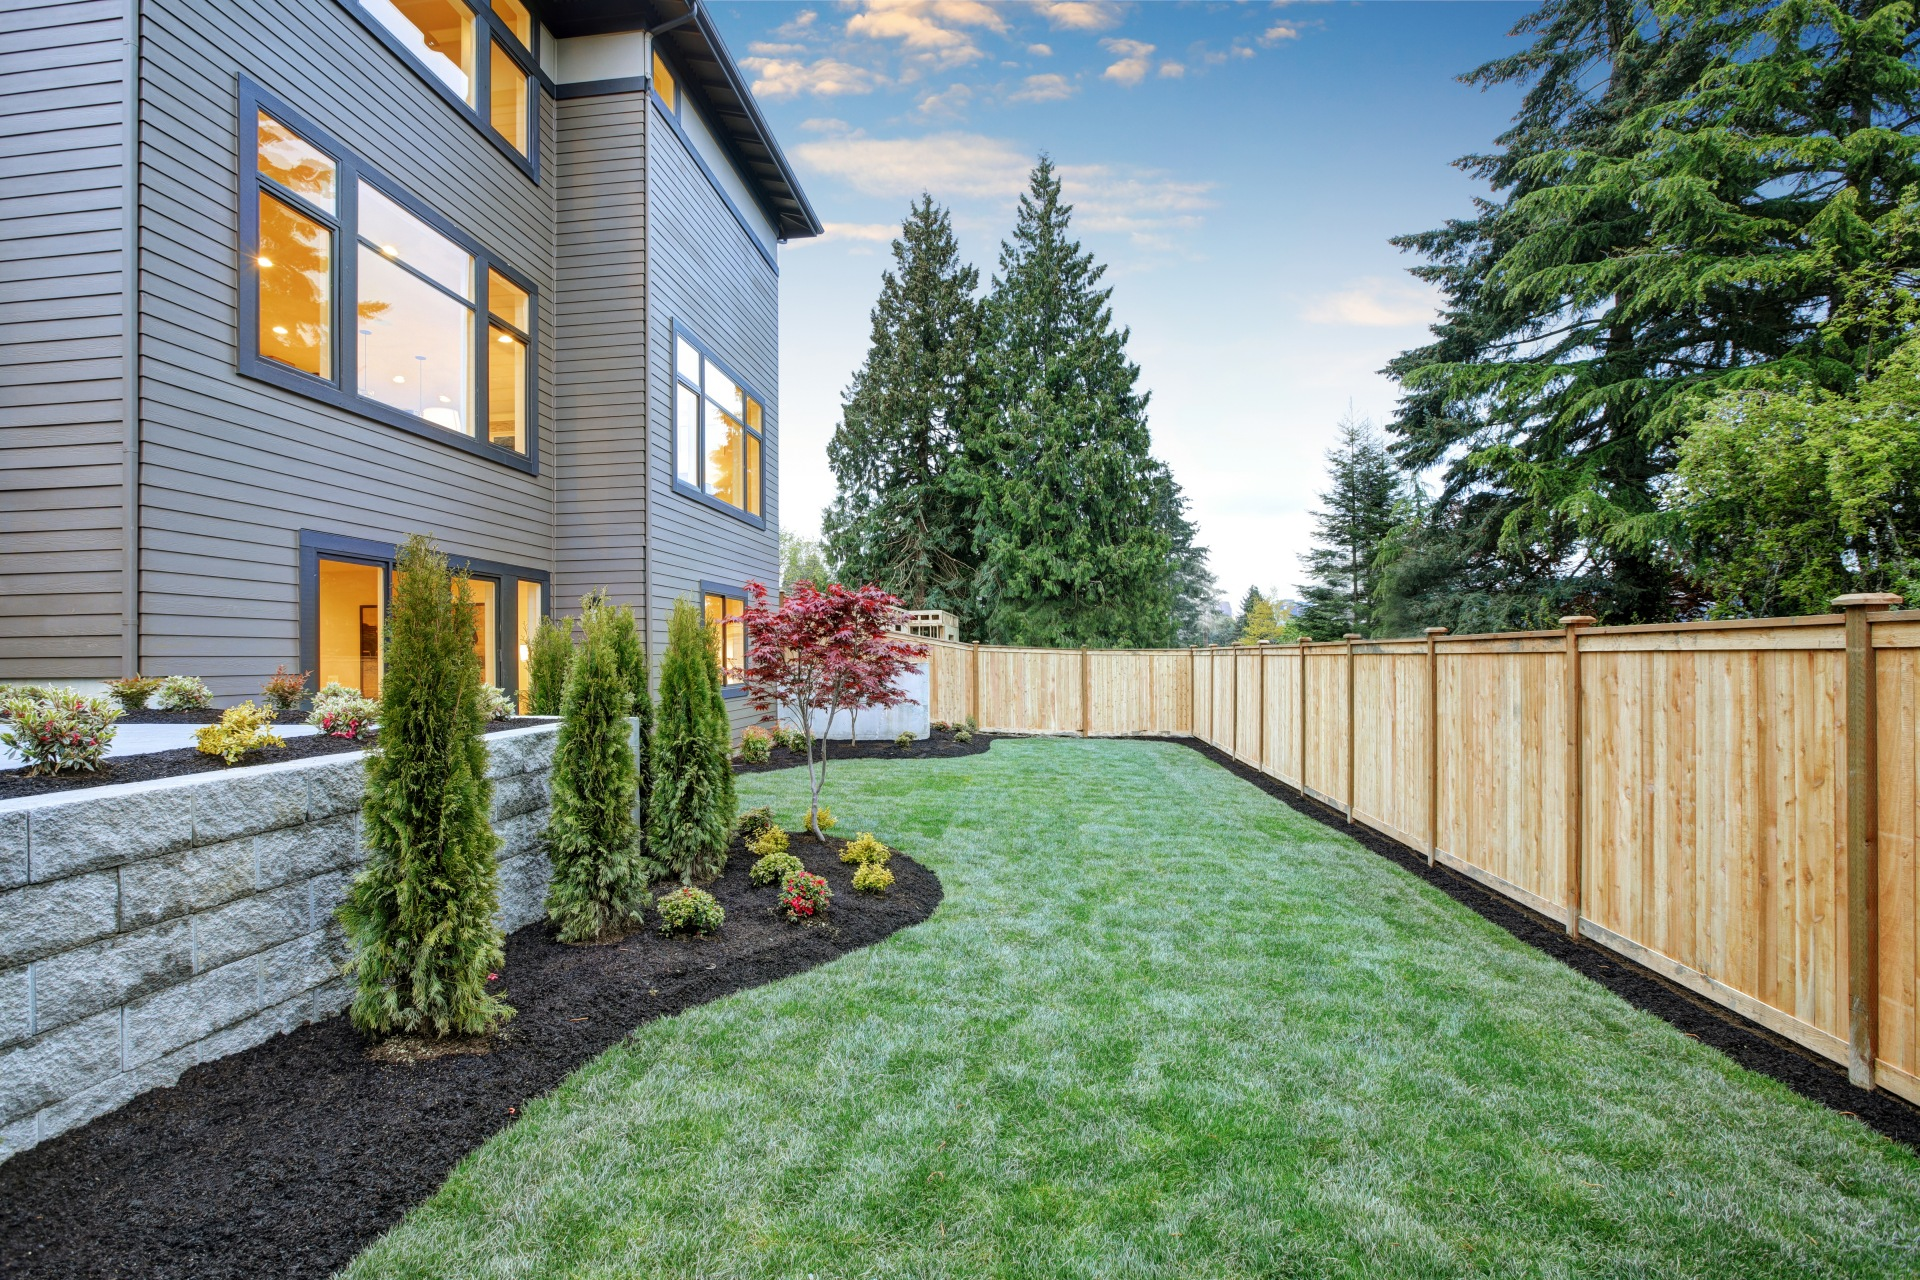 Curb Appeal 101: What About the Backyard?